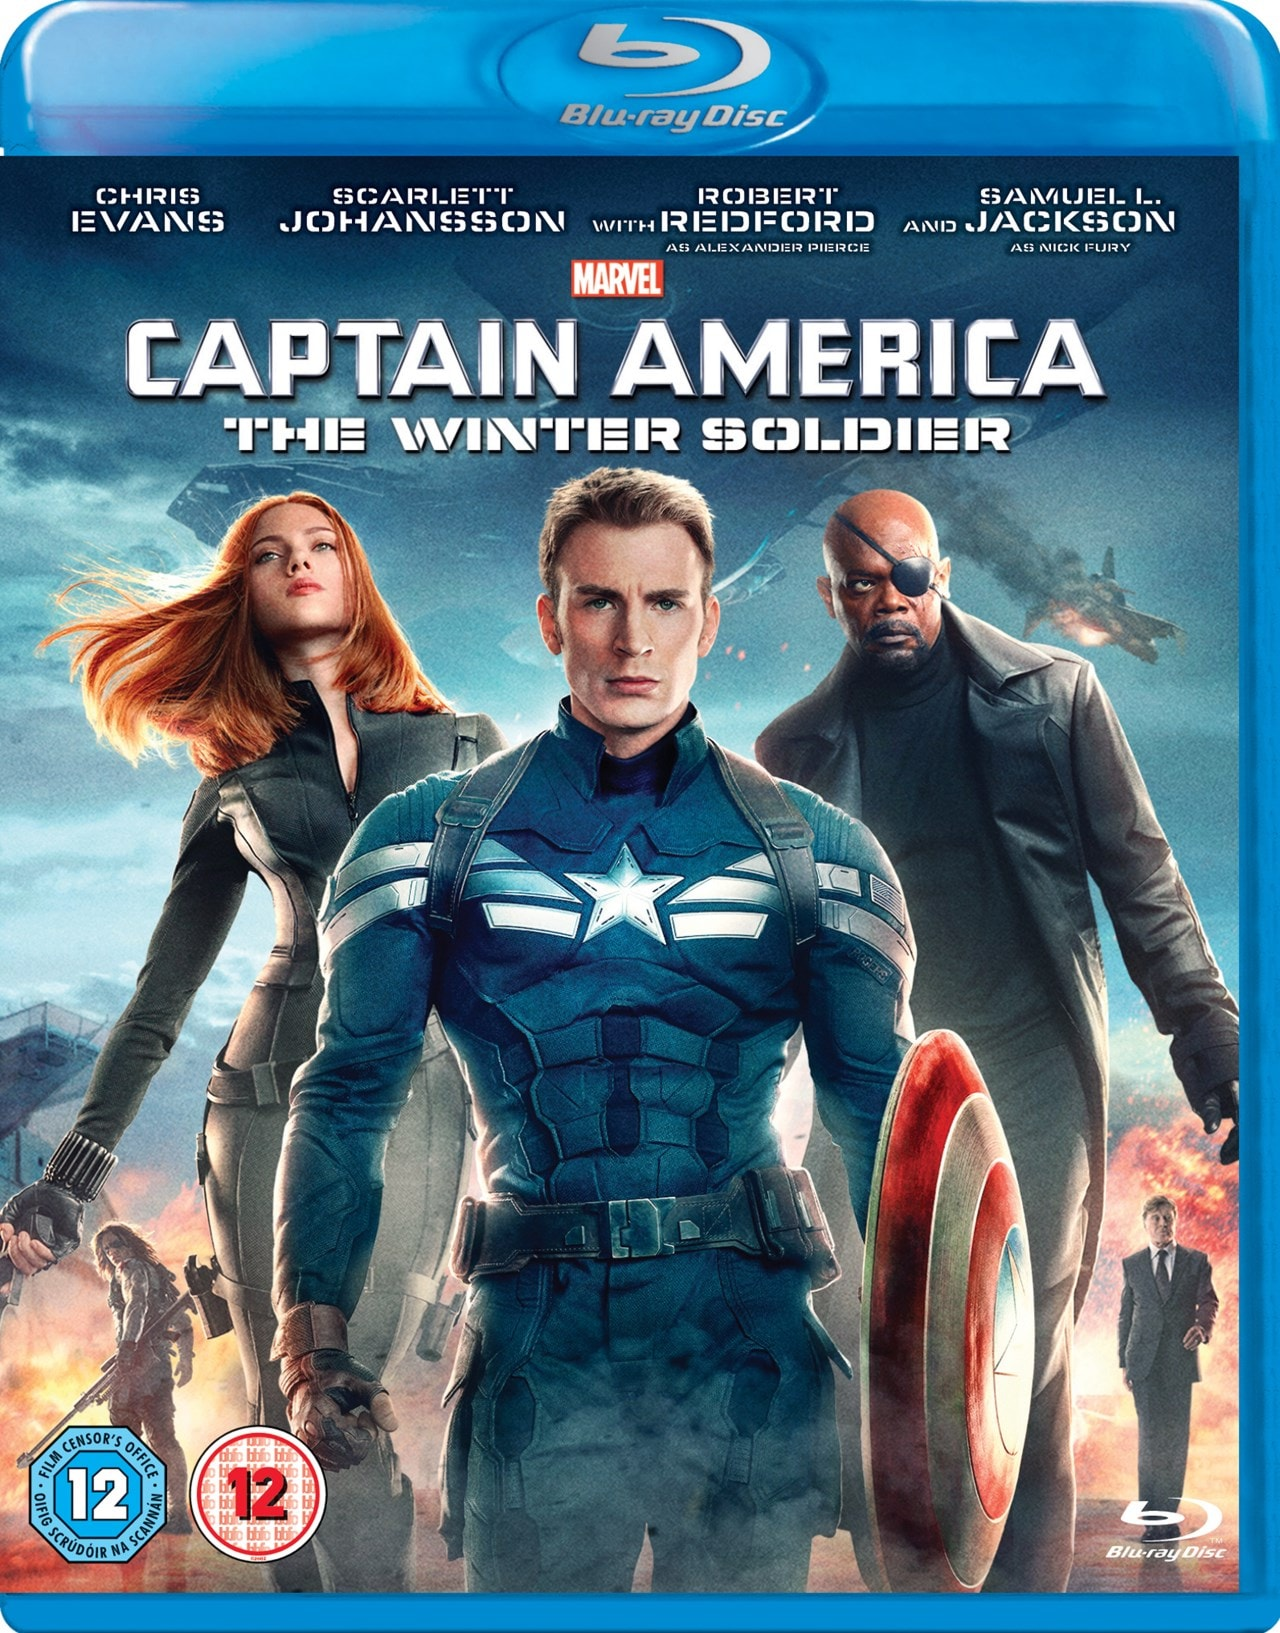 Captain America: The Winter Soldier - 3